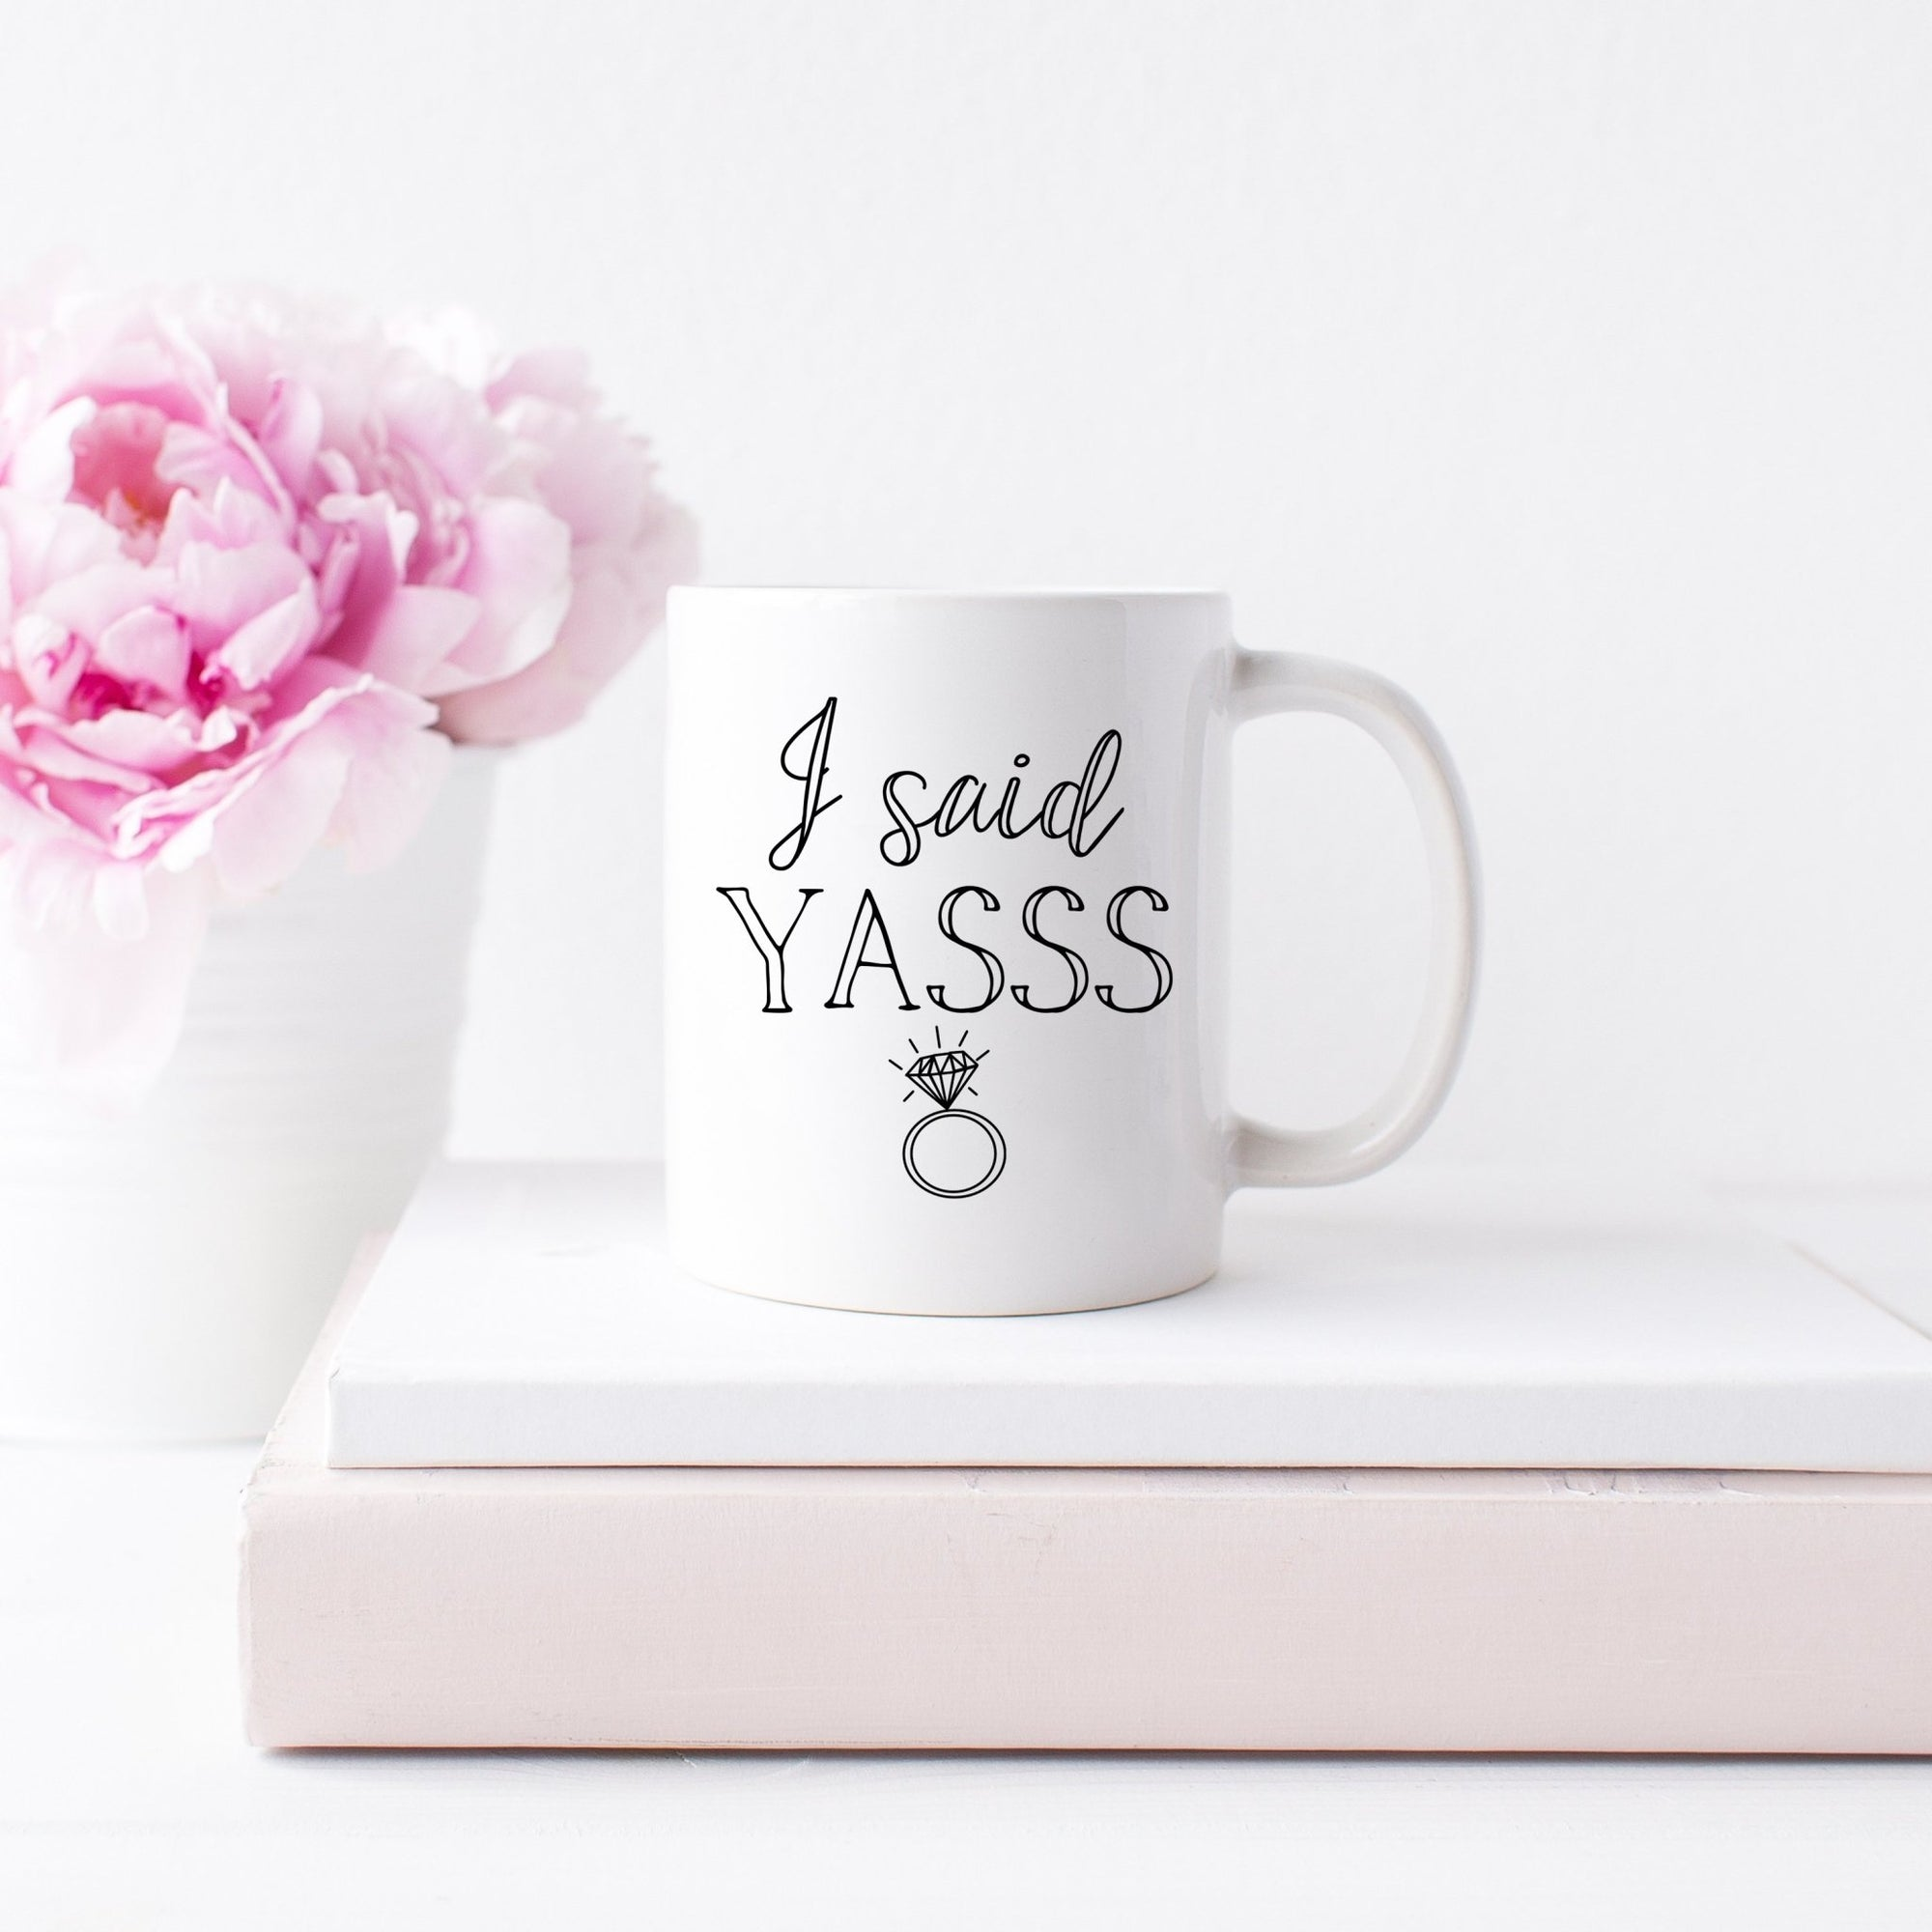 I Said Yasss Coffee Mug - Sprinkled With Pink #bachelorette #custom #gifts